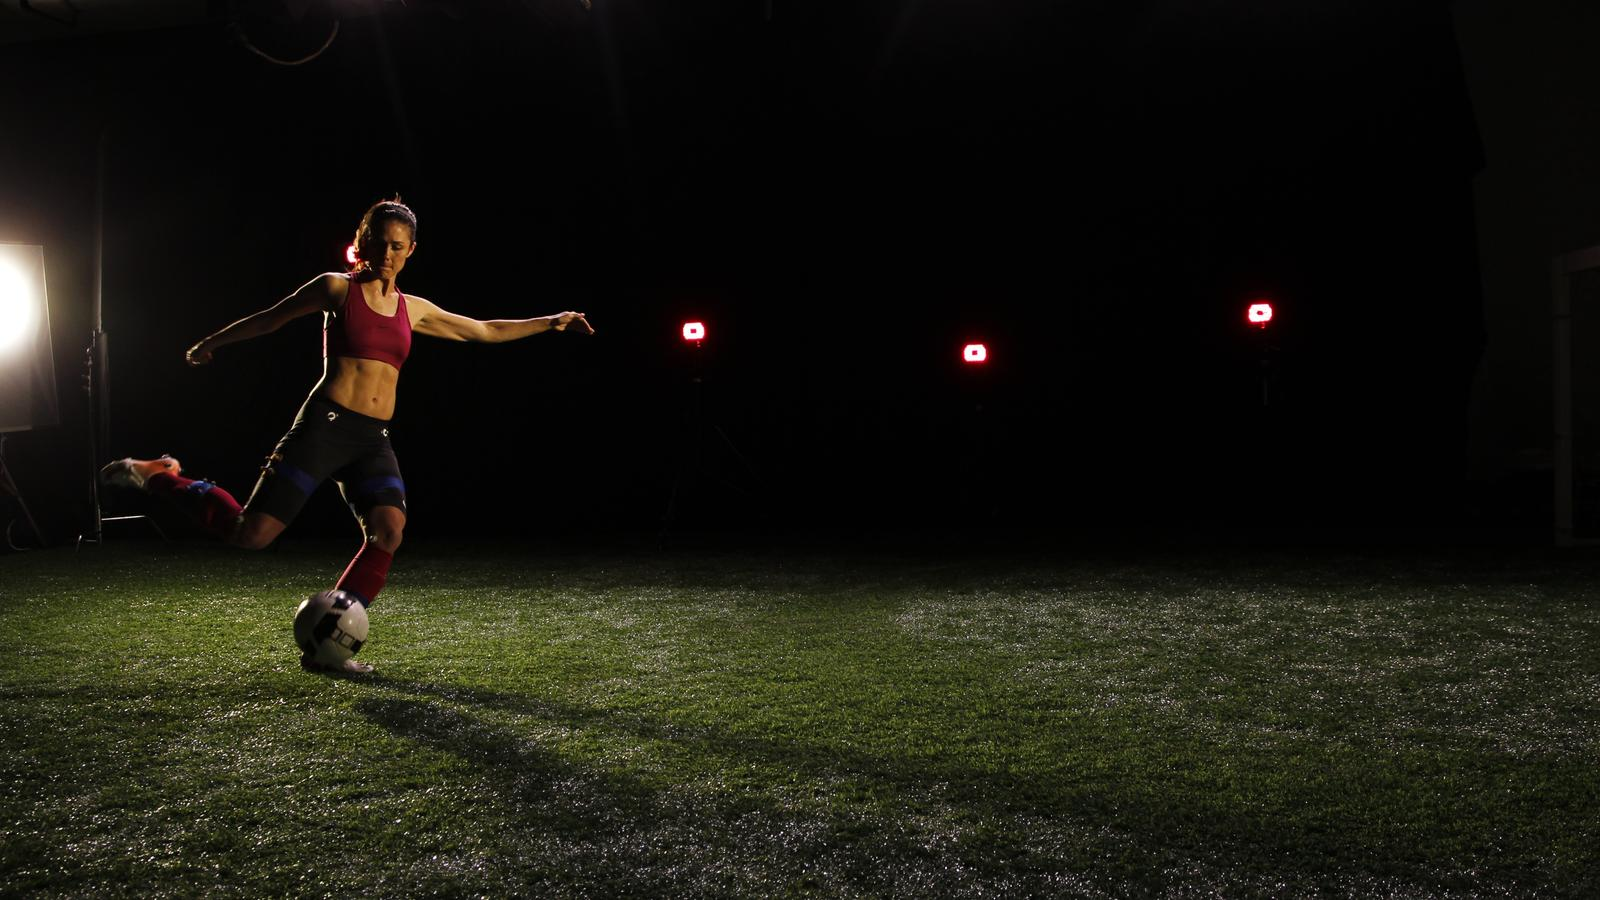 nsrl-motion-capture-soccer-wide